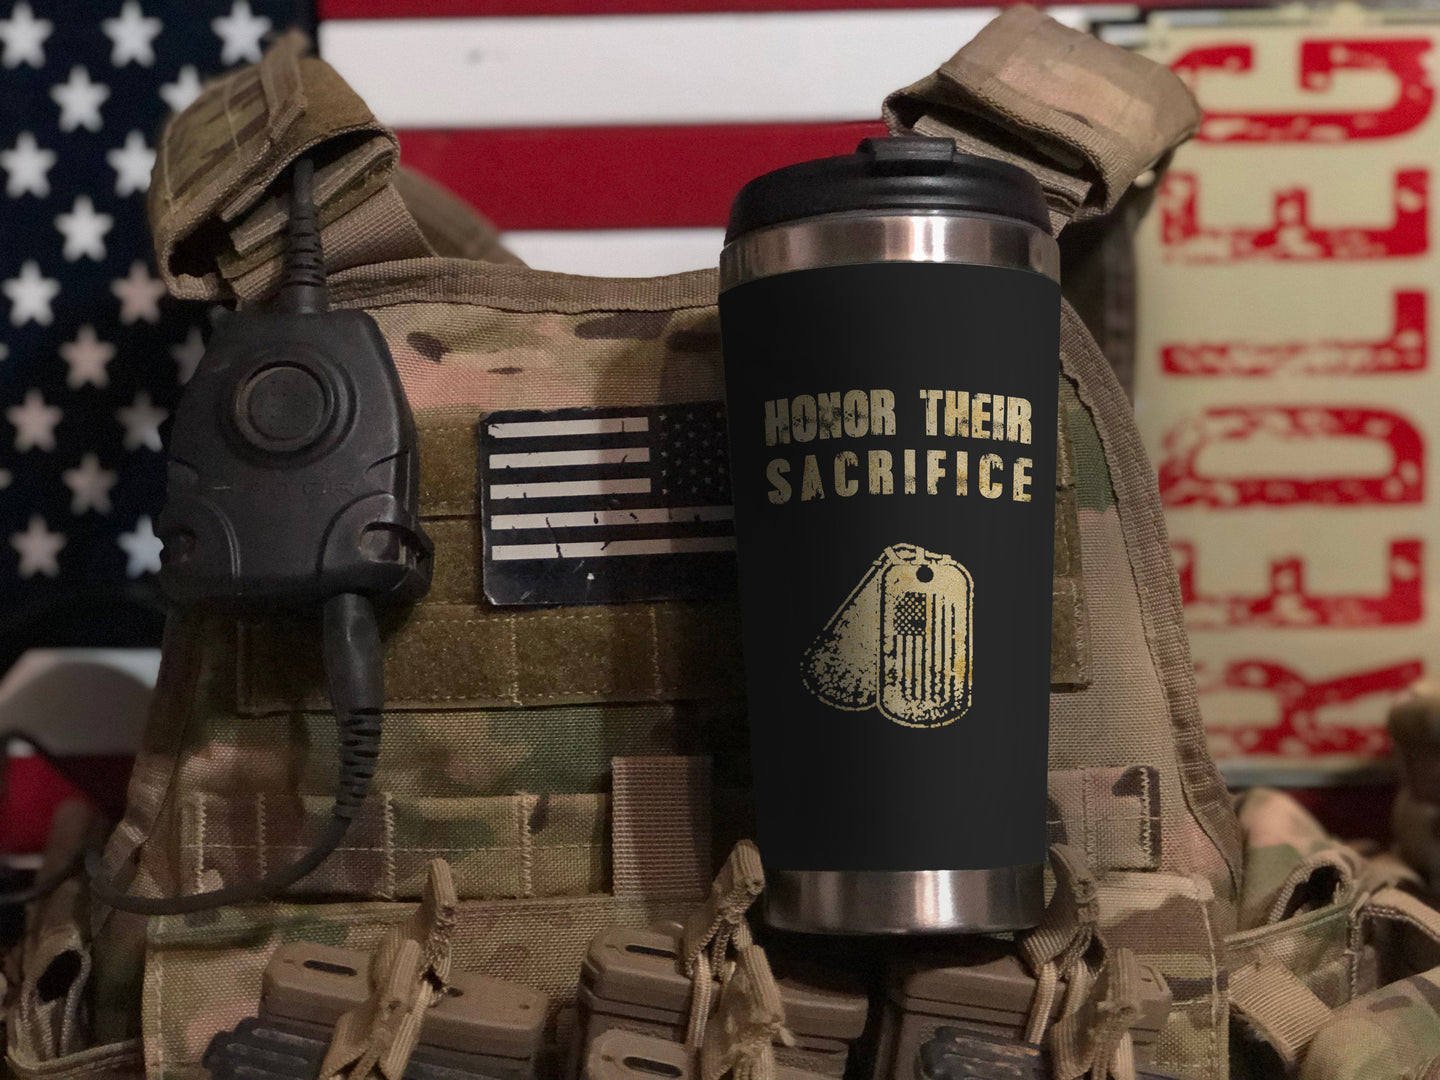 Honor Their Sacrifice Veteran Tumbler 2019